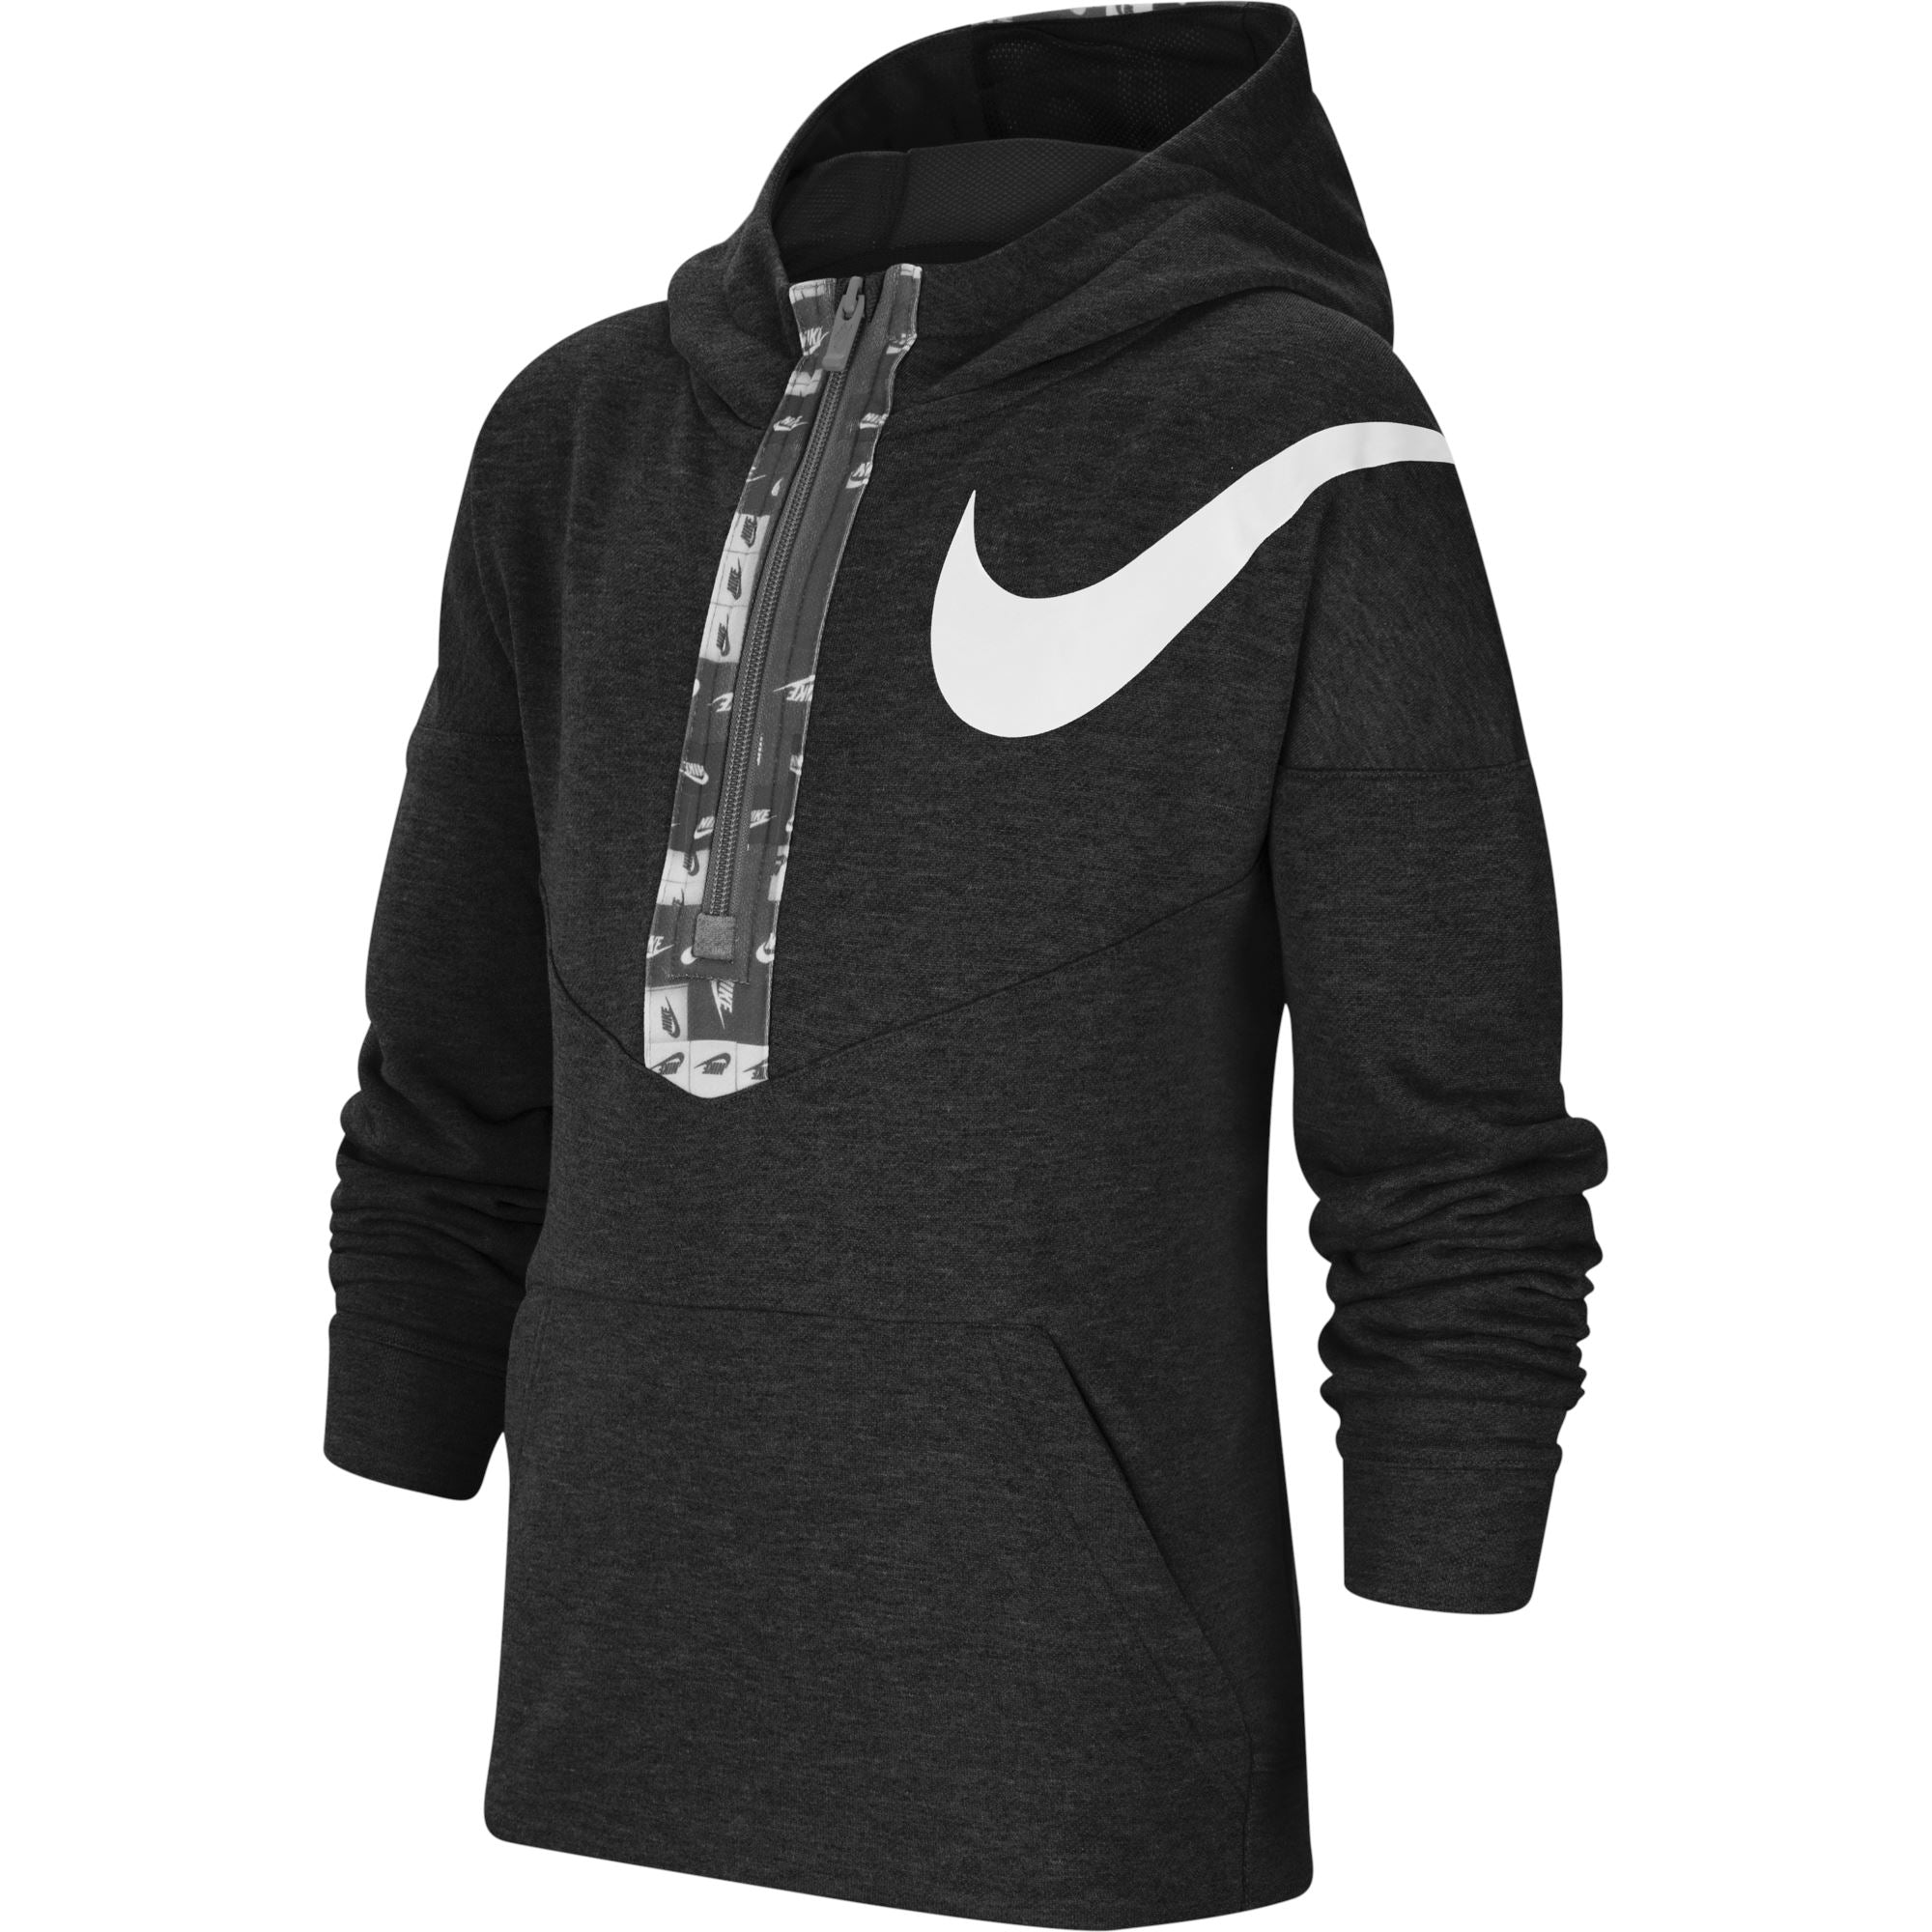 Nike Dri-FIT Big Kids' (Boys') Graphic Half-Zip Training Hoodie - Black/White SP-ApparelFleece-Kids Nike